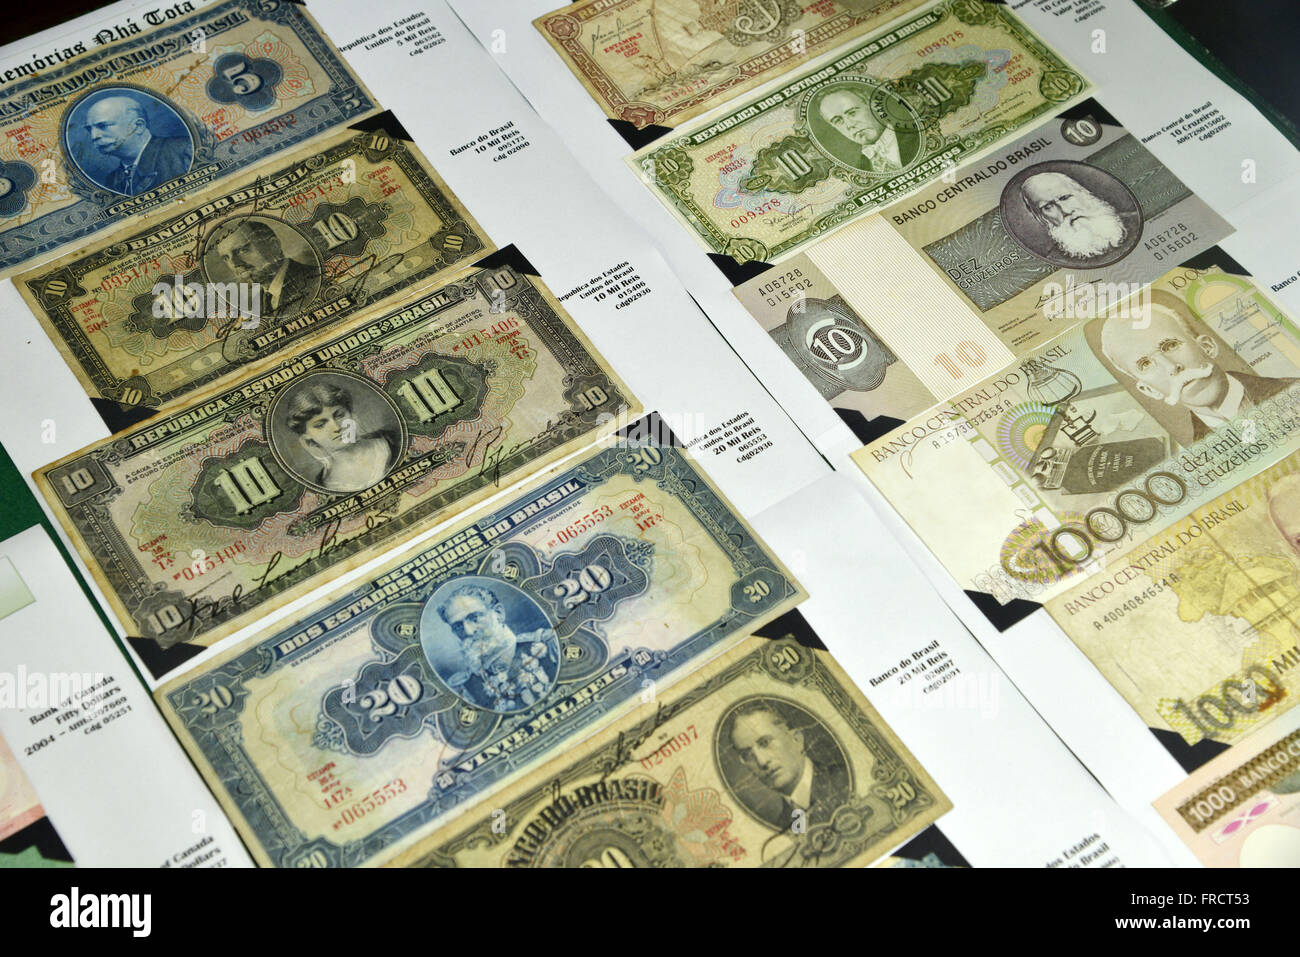 Old exposed ballots in private museum - Stock Image